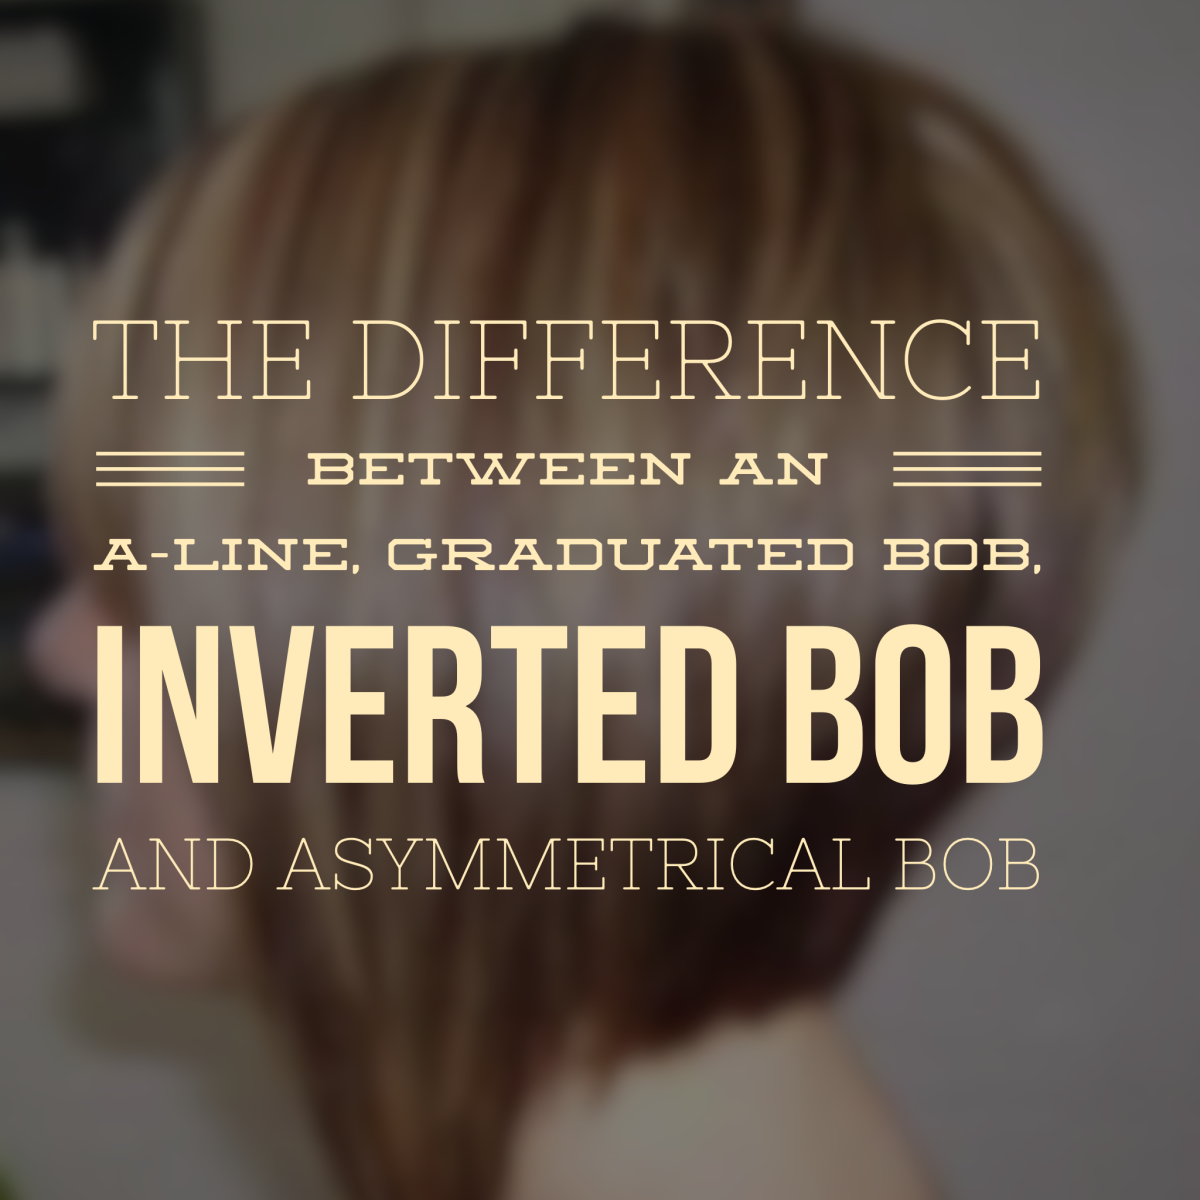 Learn all about the differences between an aline graduated bob